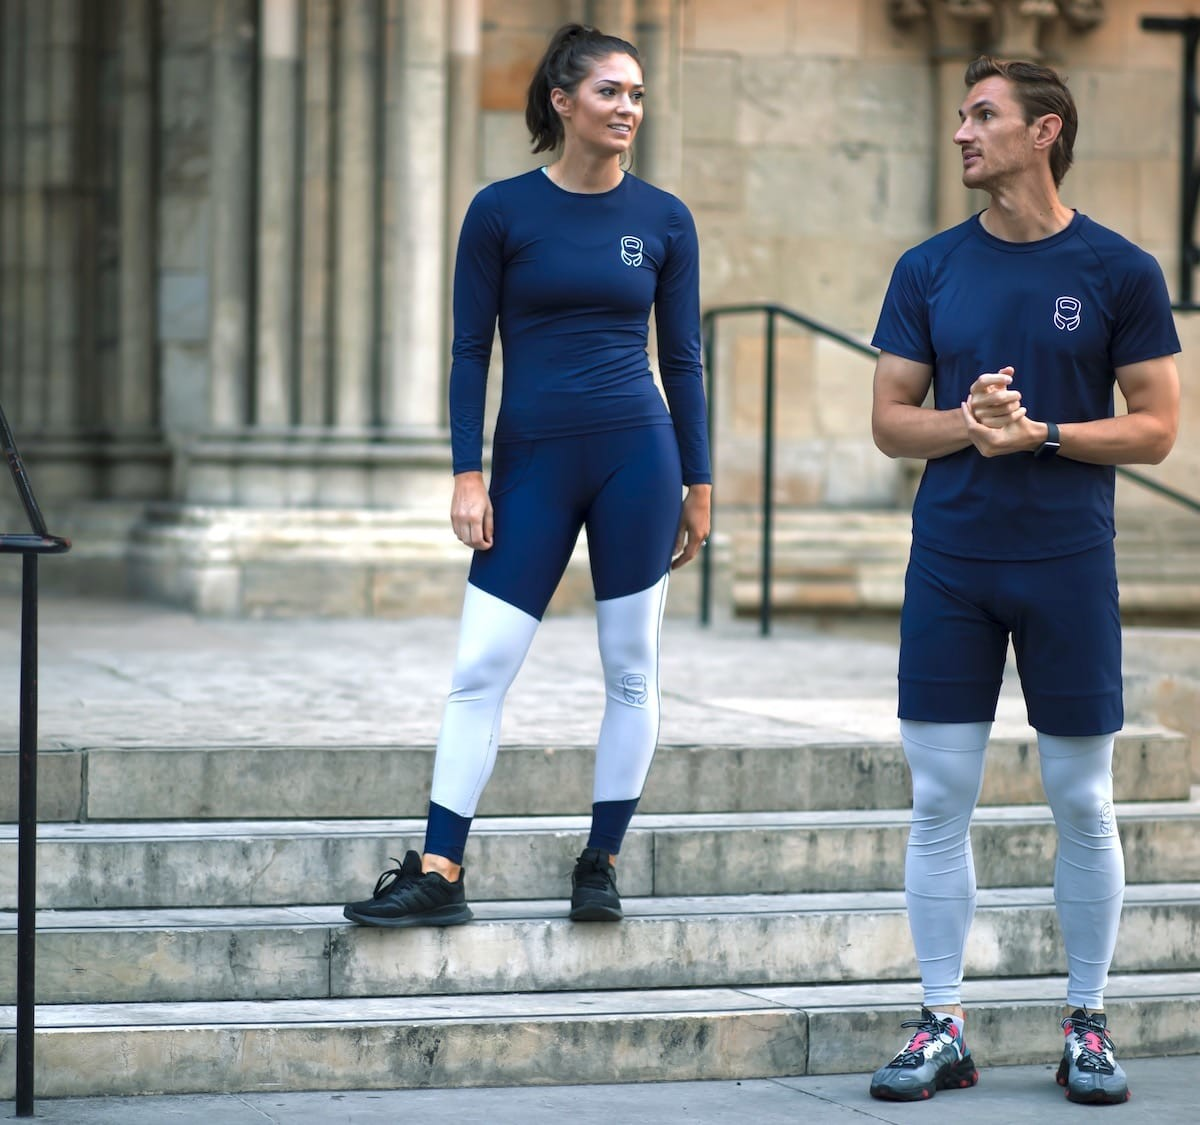 Mocean Fitness sustainable activewear comes from recycled ocean pollution